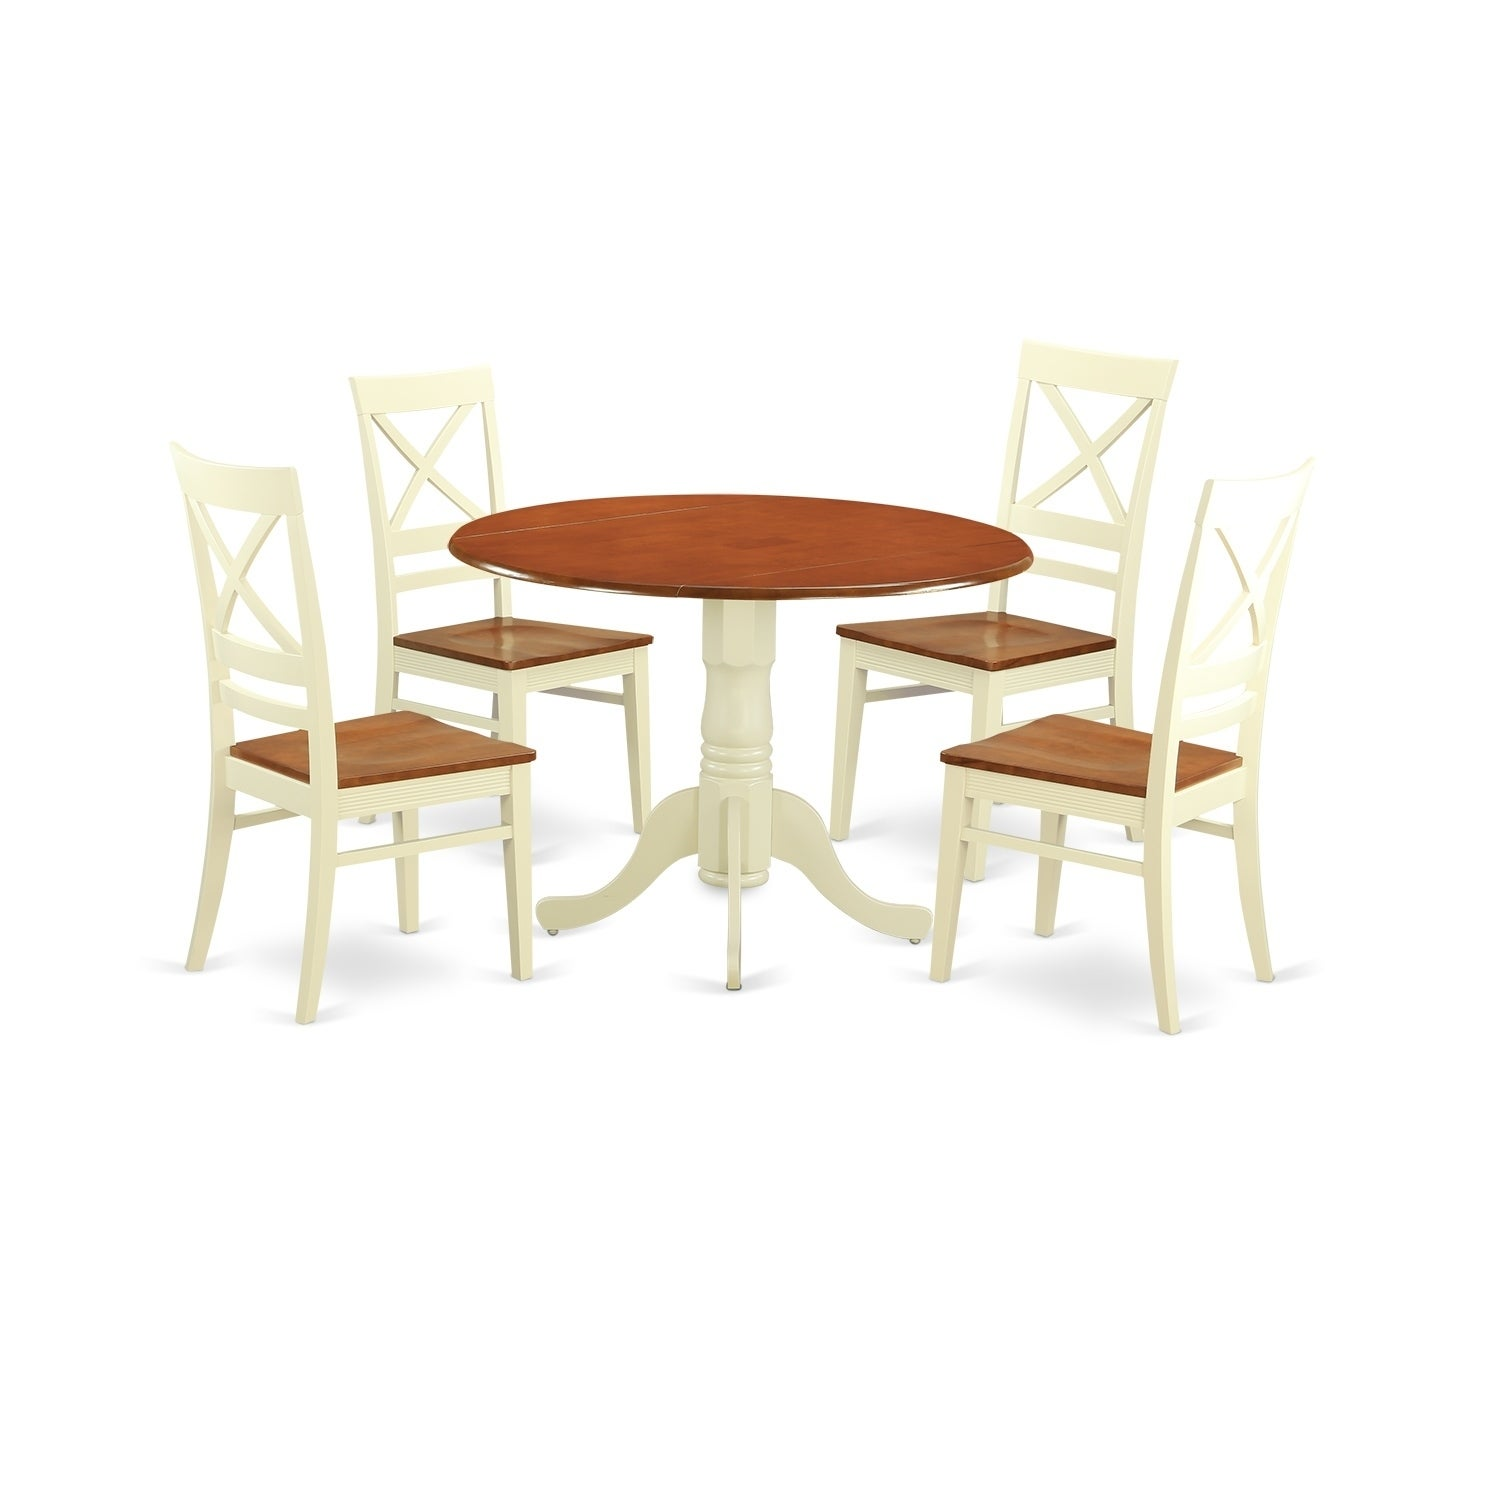 DLQU5-W 5 PC Kitchen Table set-Dining Table and 4 Kitchen Chairs | eBay